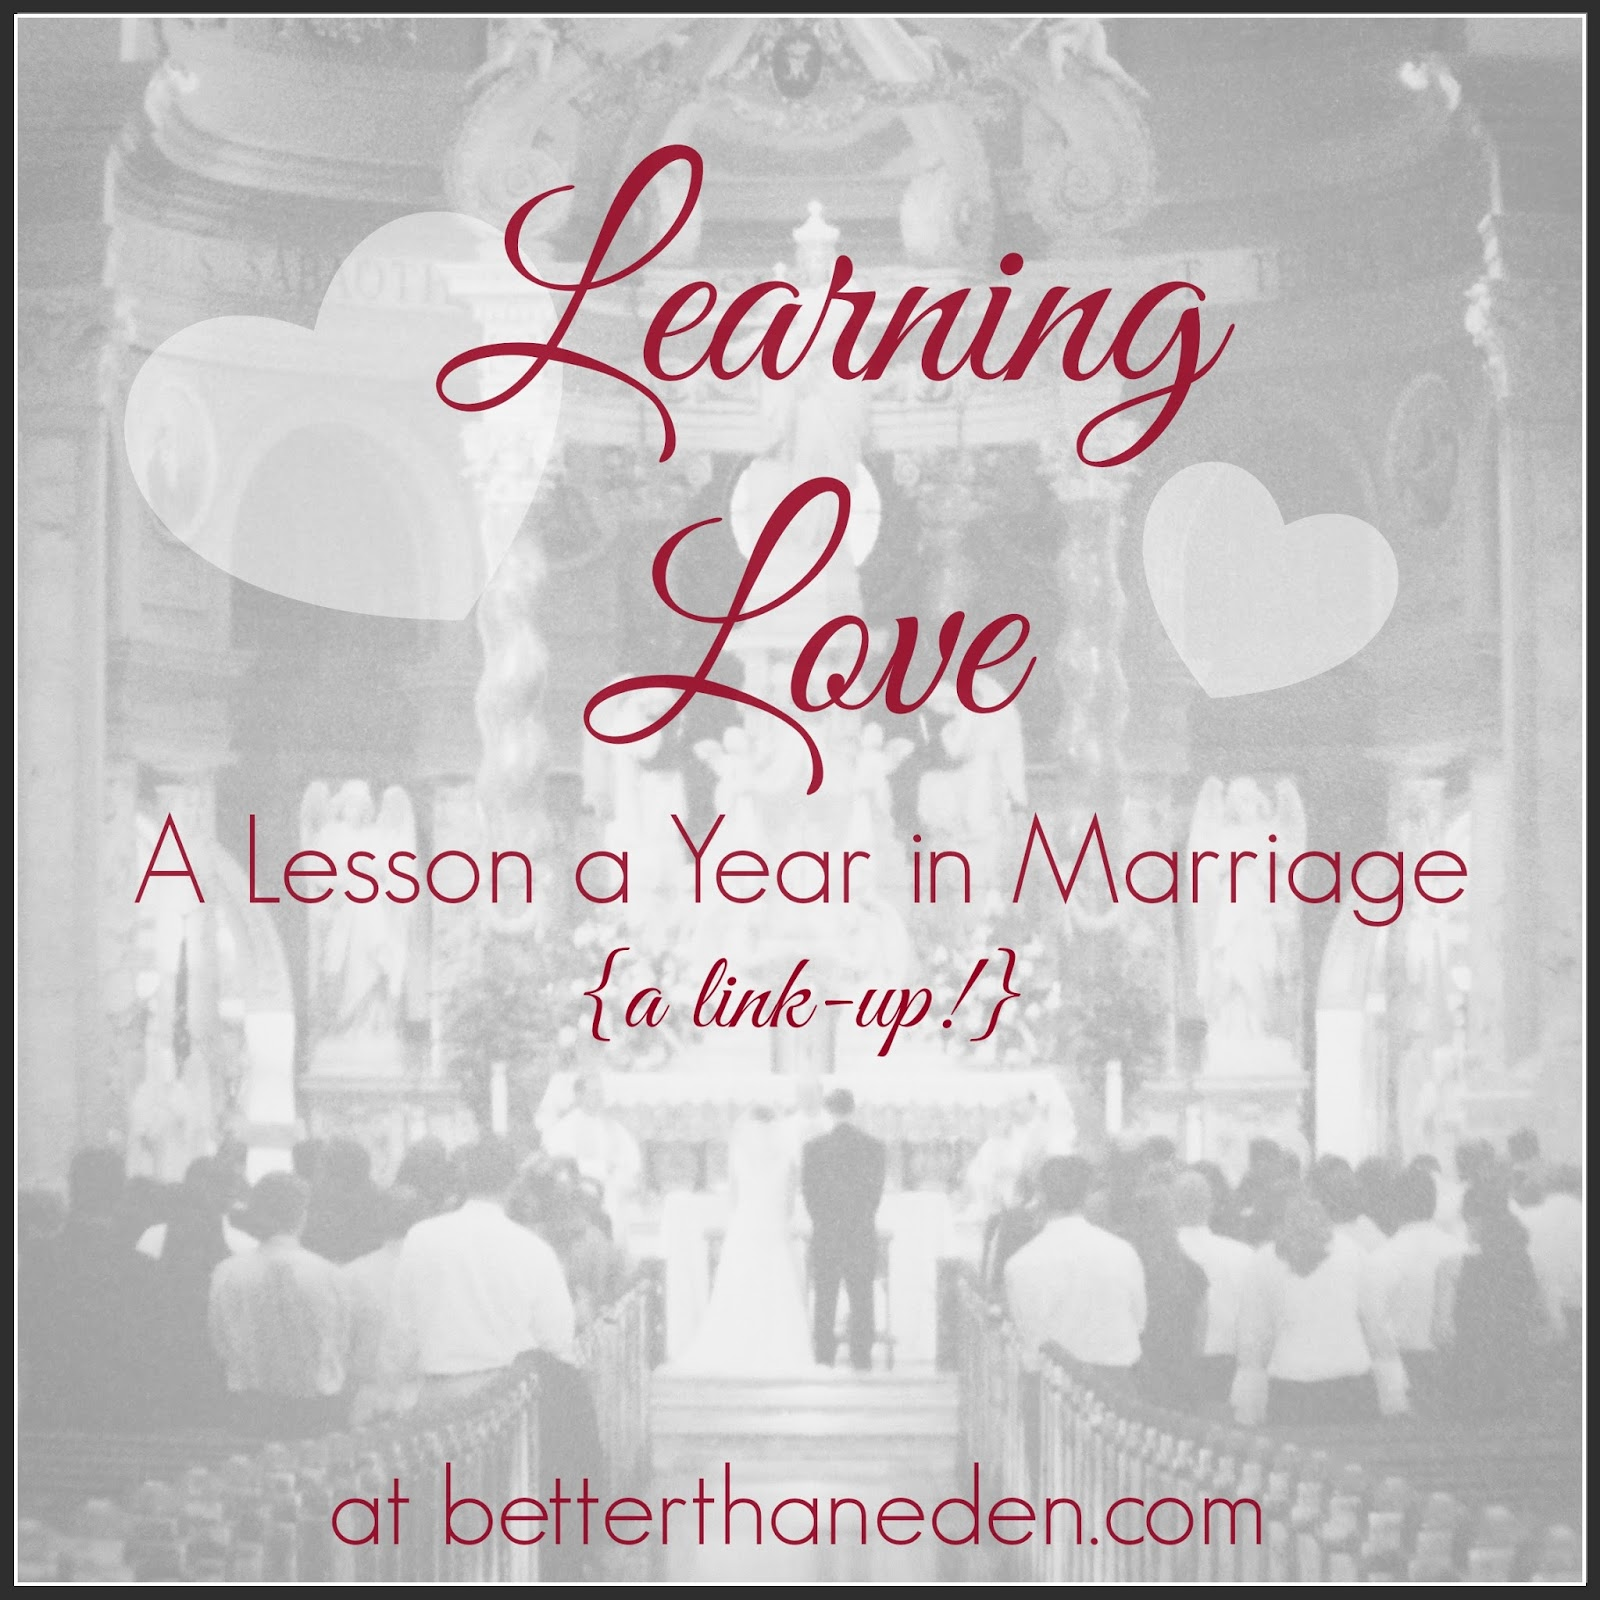 Love hookup and marriage lesson 2